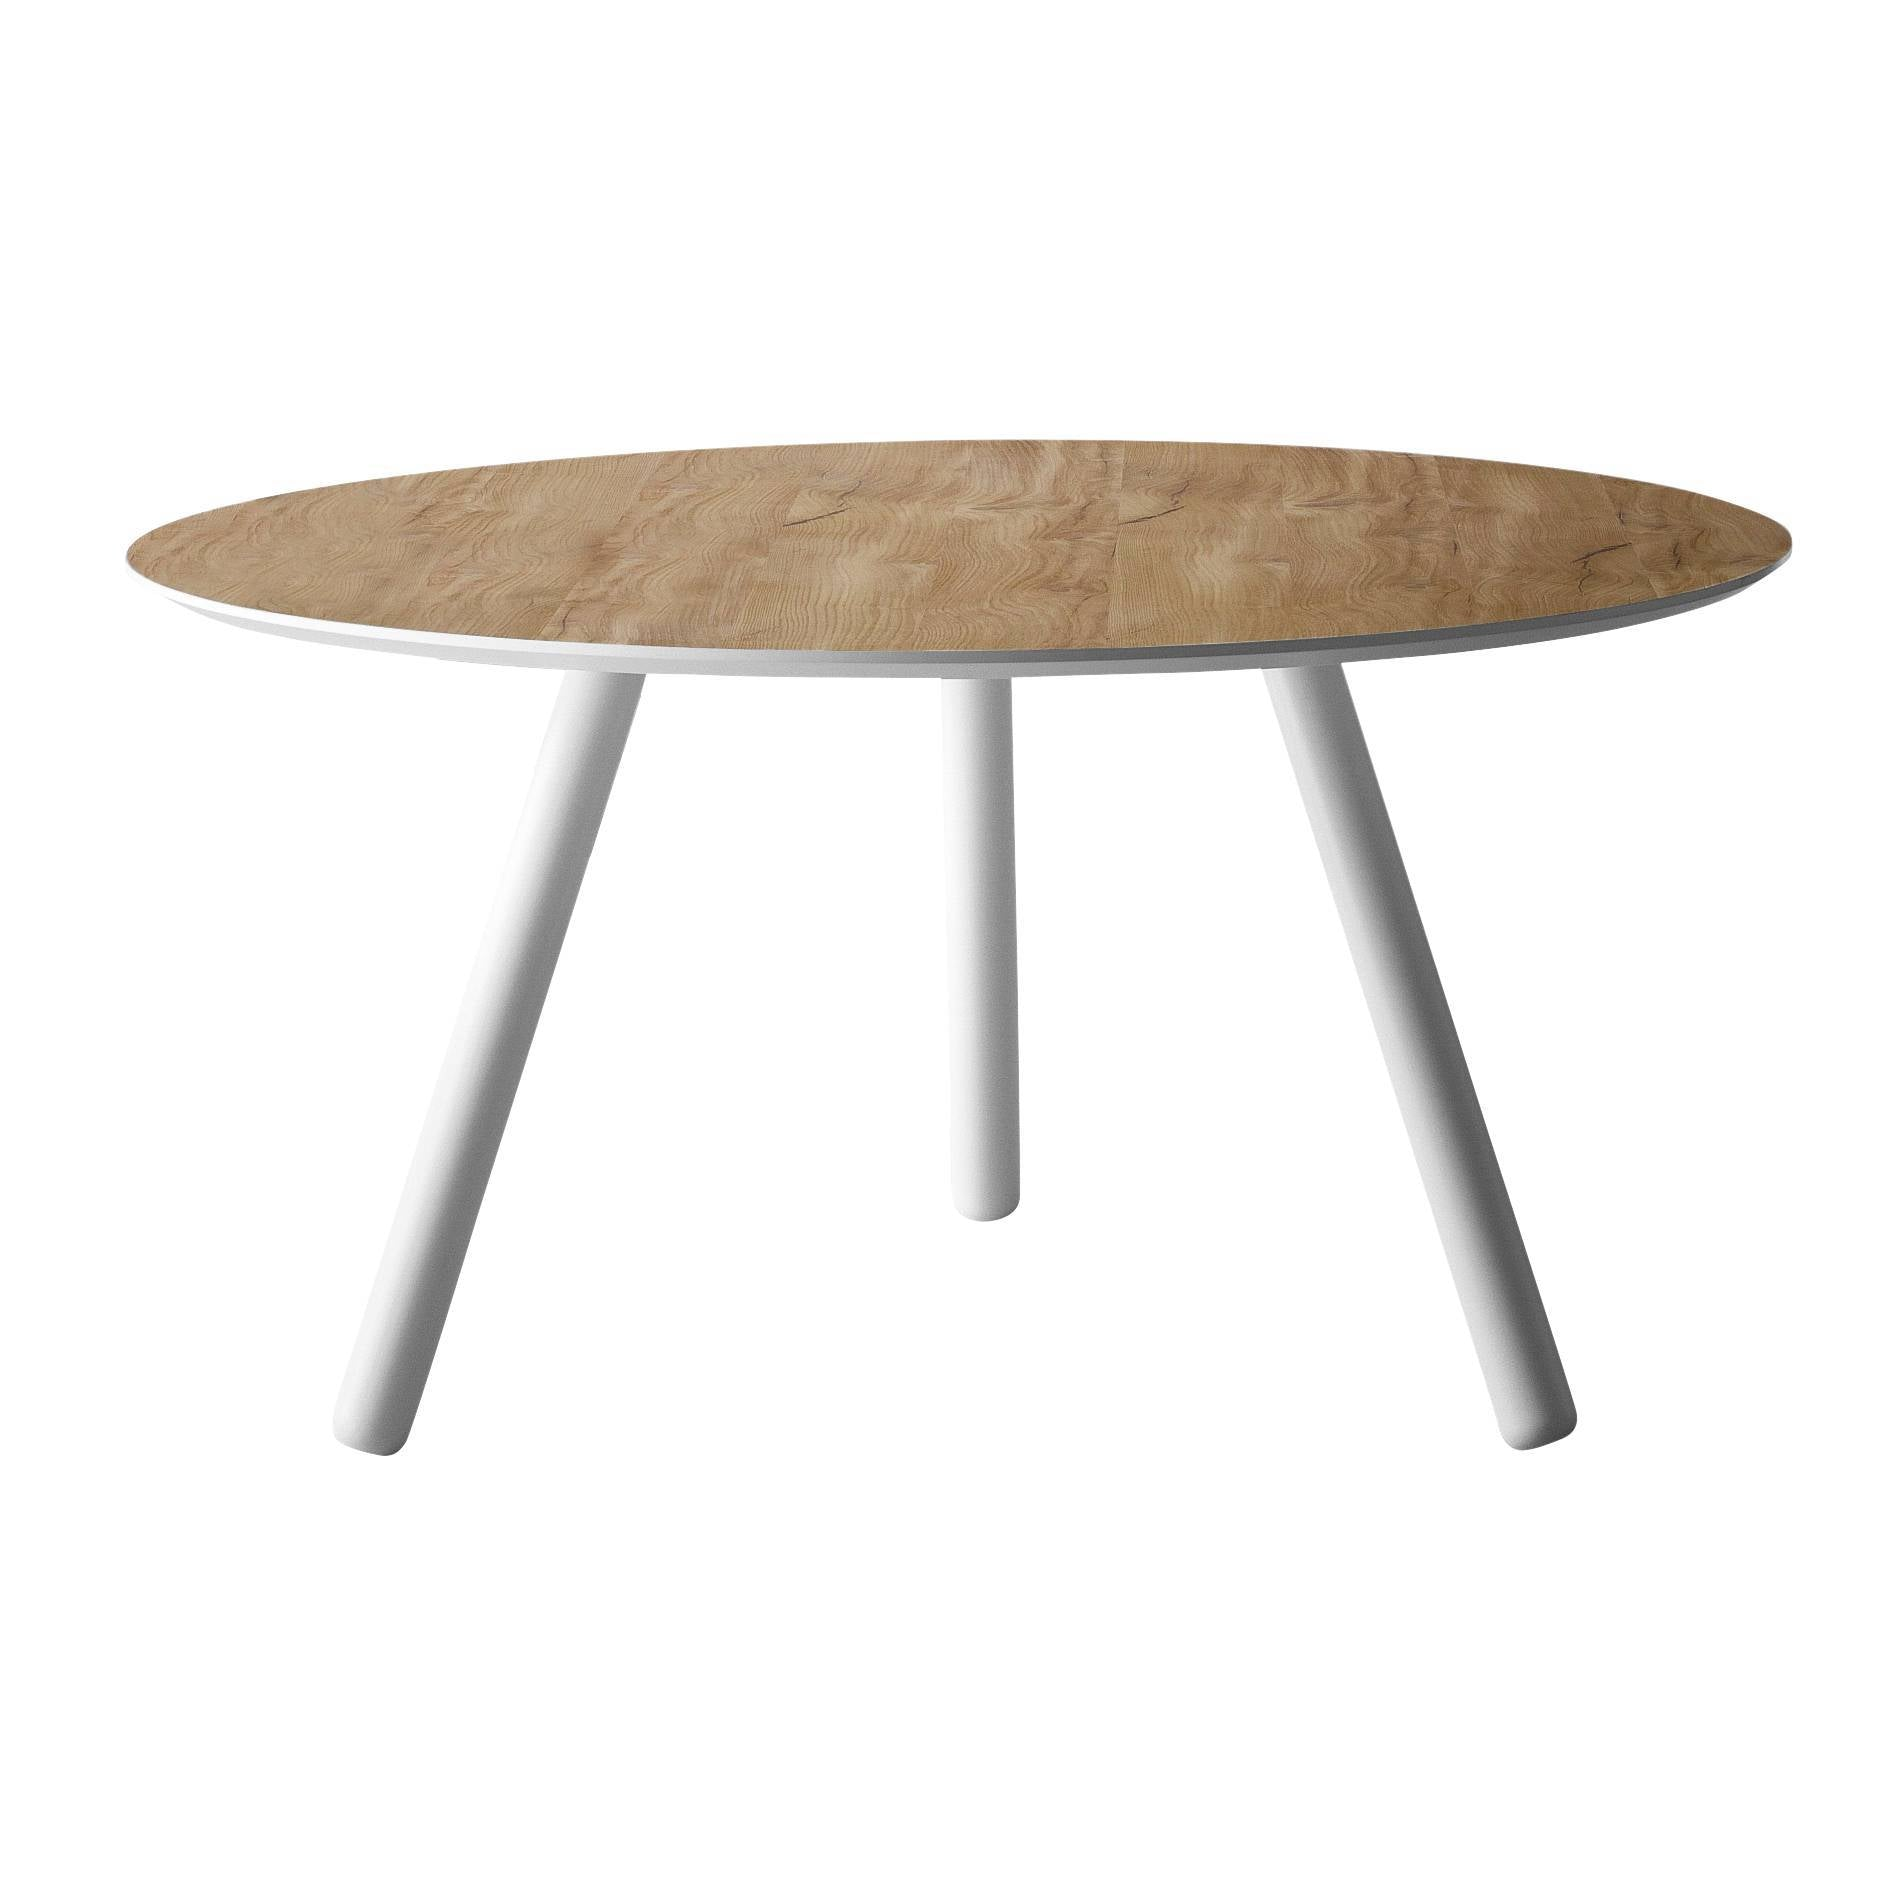 Pixie Round Table: Large + Flamed Oak + White Lacquer